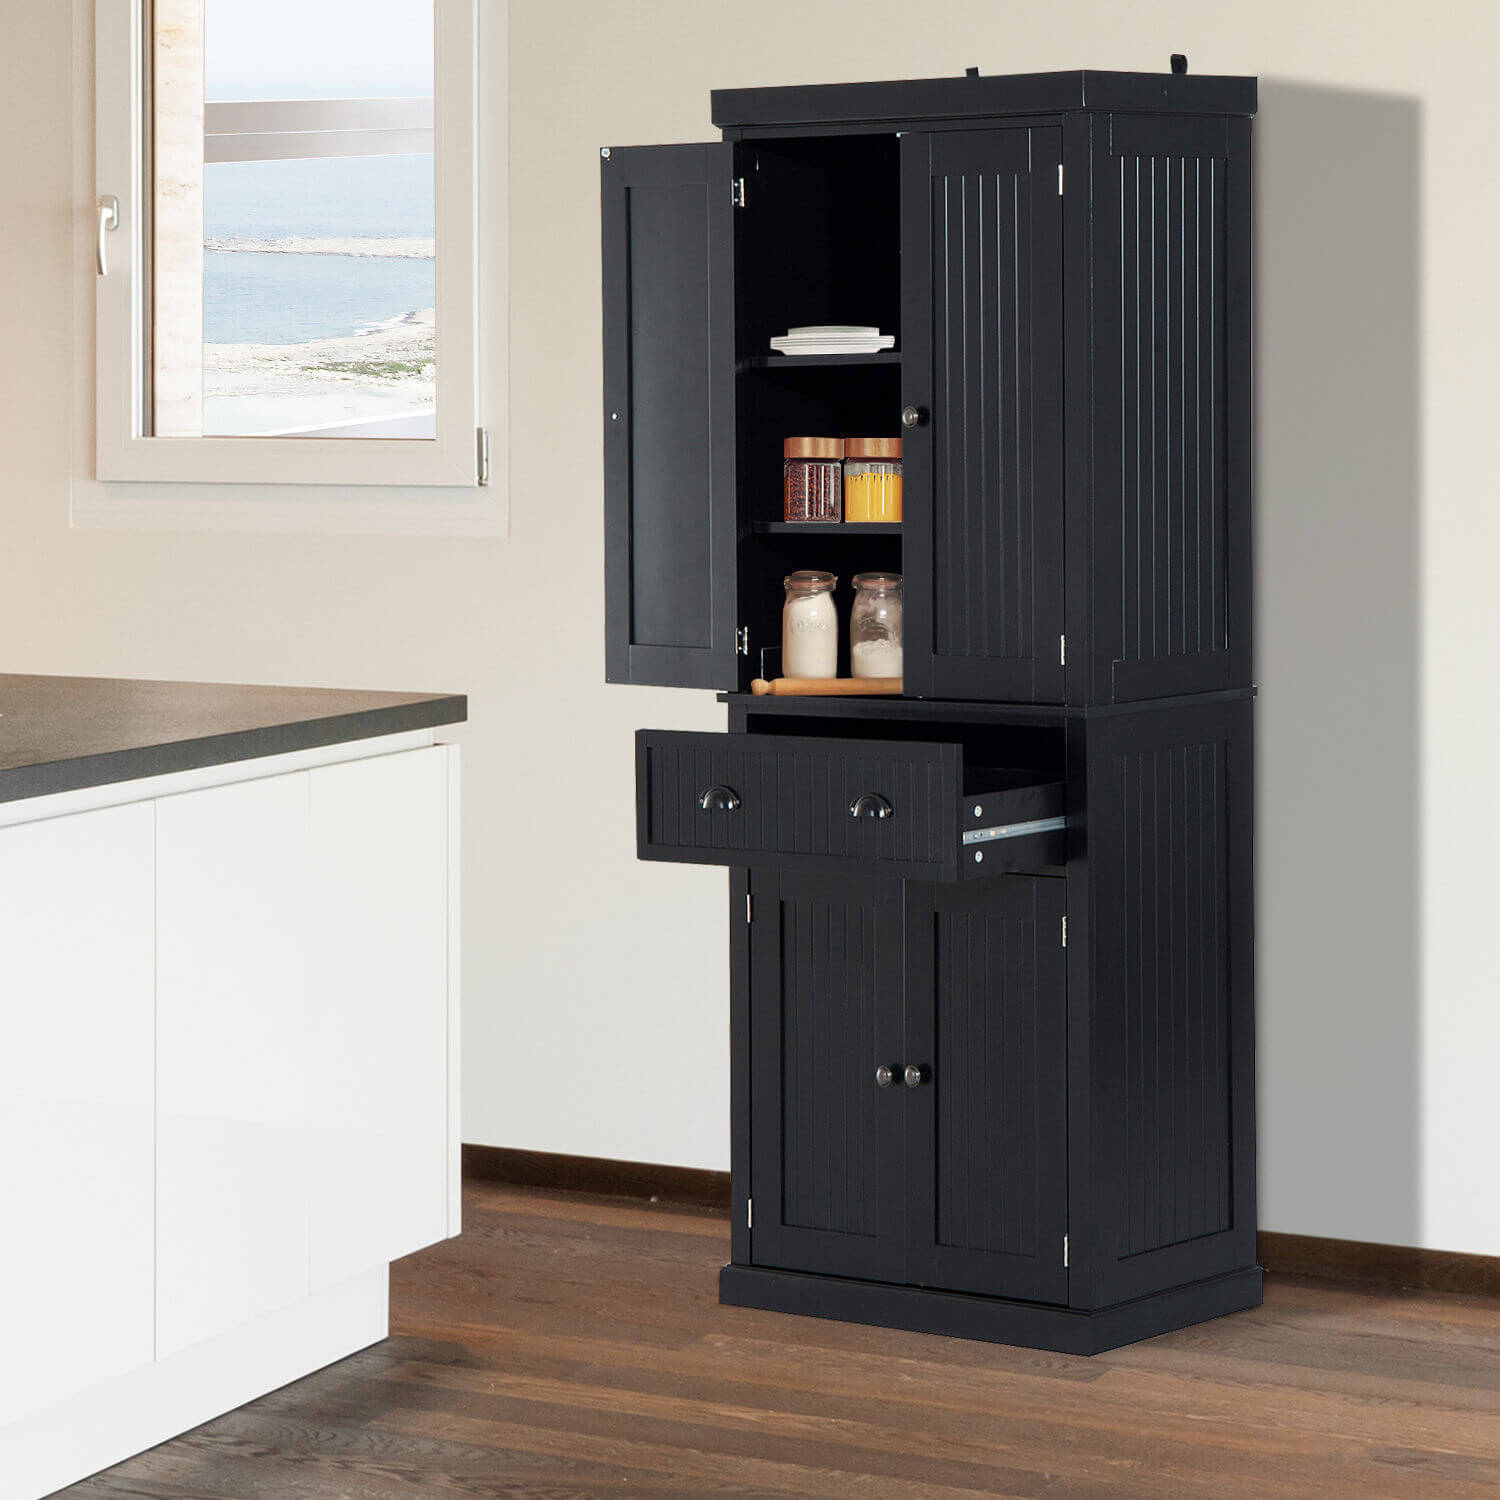 """HOMCOM Tall 72"""" Traditional Colonial Style Standing Kitchen Pantry Cupboard  Cabinet - Black"""